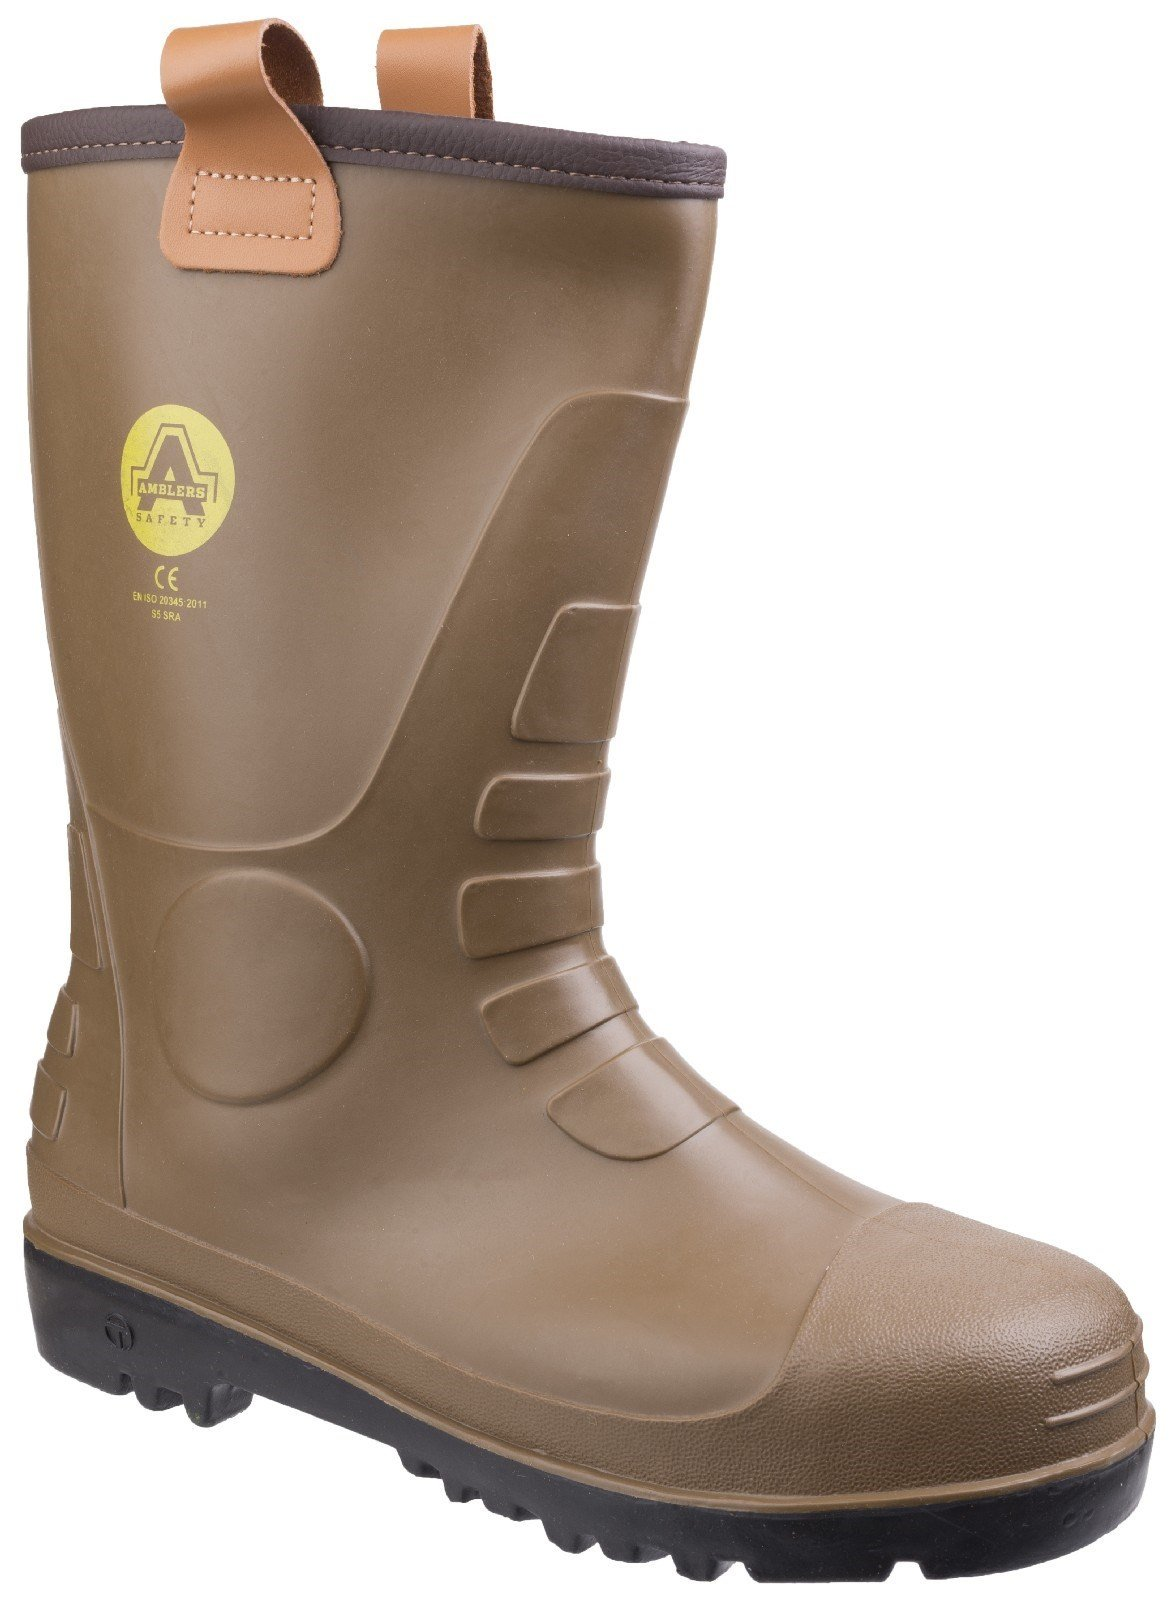 Amblers Unisex Safety Waterproof PVC Pull on Rigger Boot Tan 21153 - Tan 8